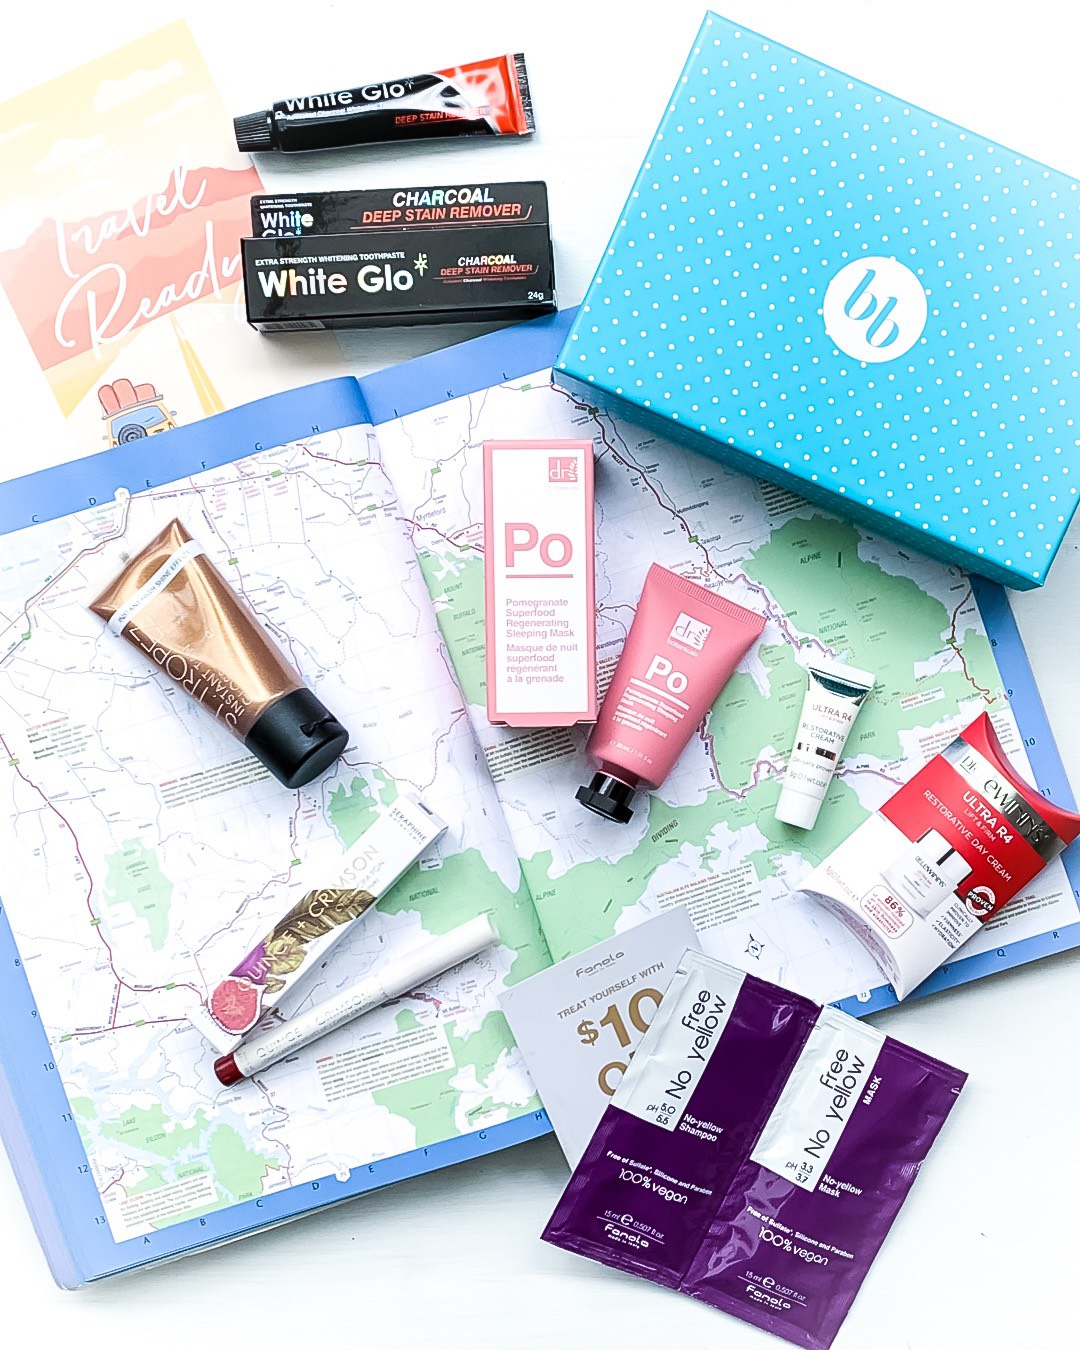 June 2019 Travel Ready Treasures Bellabox Review